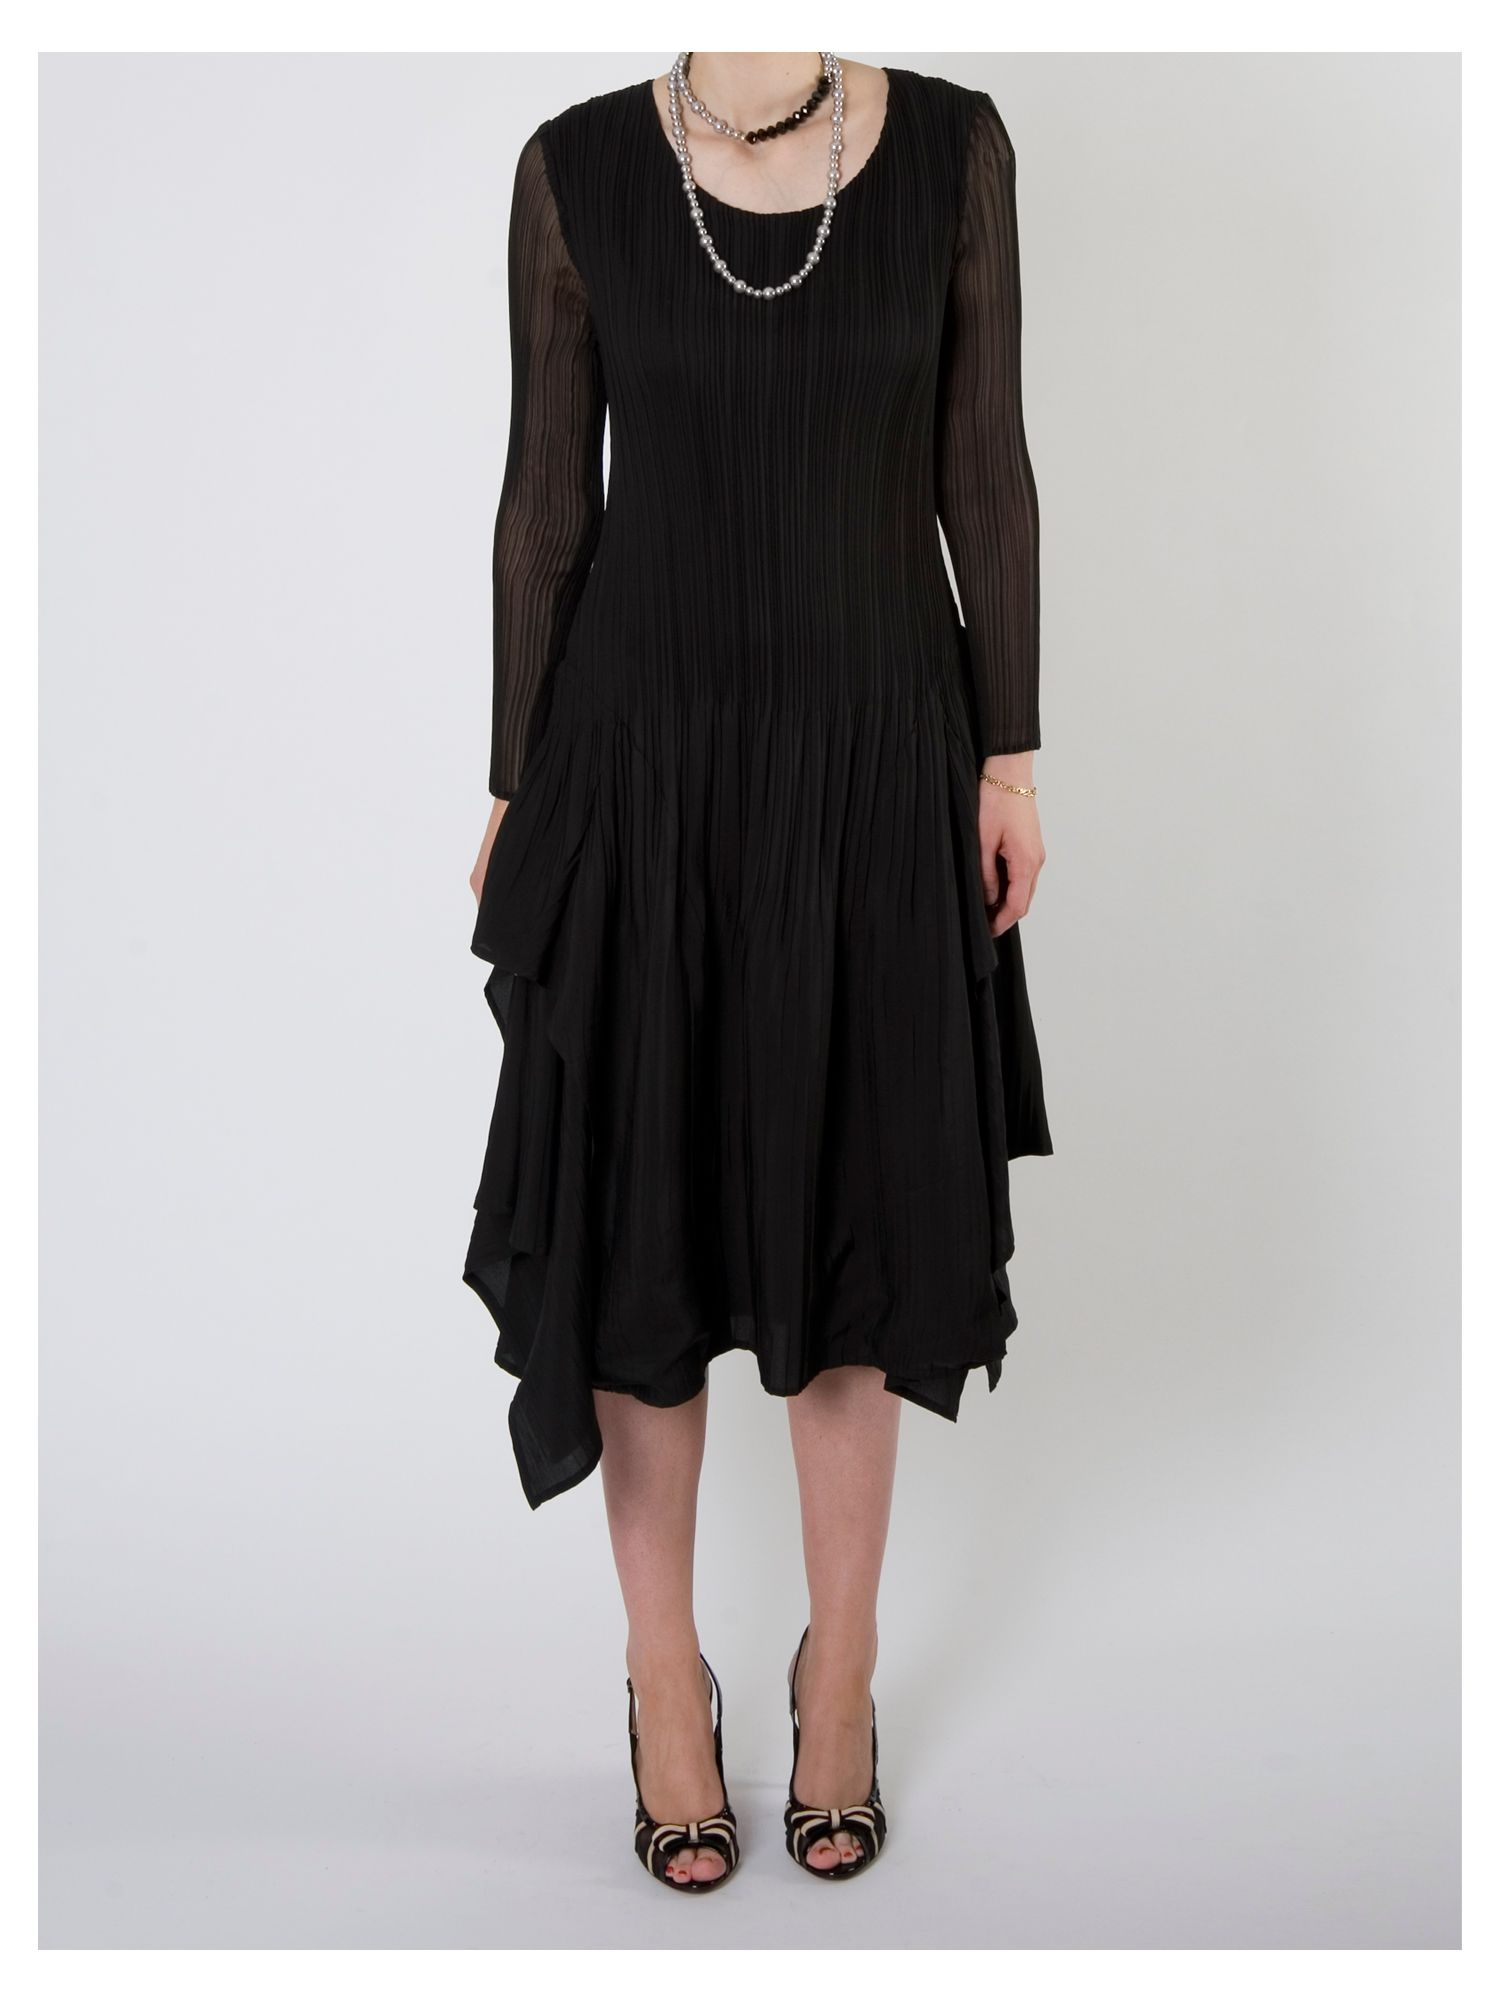 Crush pleat layered dress